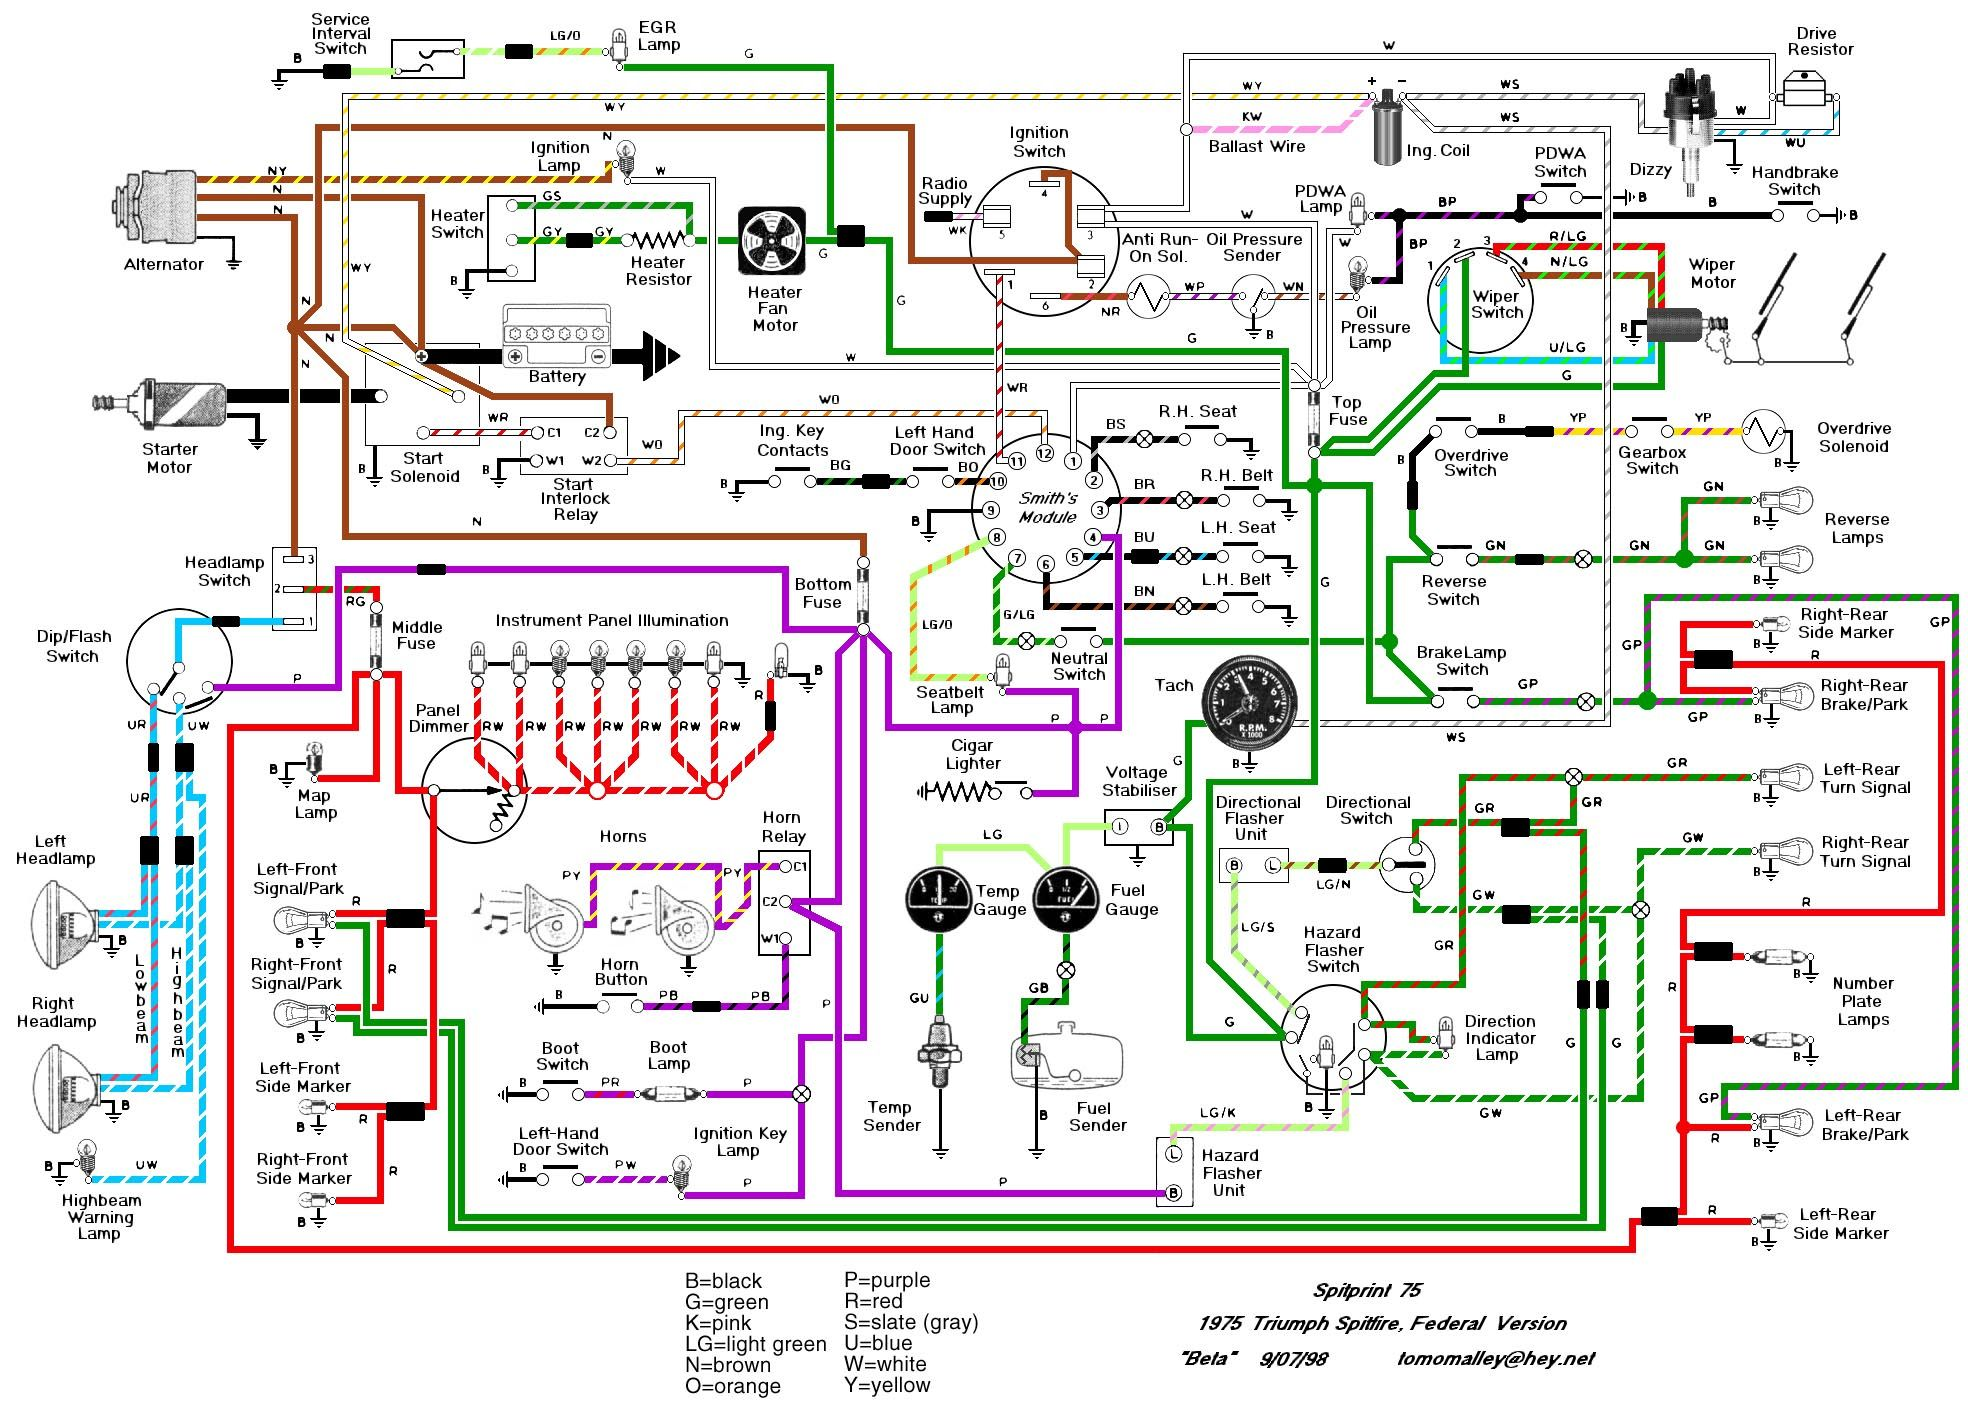 1979 Mgb Distributor Wiring Diagram Just Wiring Data Goodman Air Handler Wiring  Diagrams 1968 Mg Midget Wiring Diagram